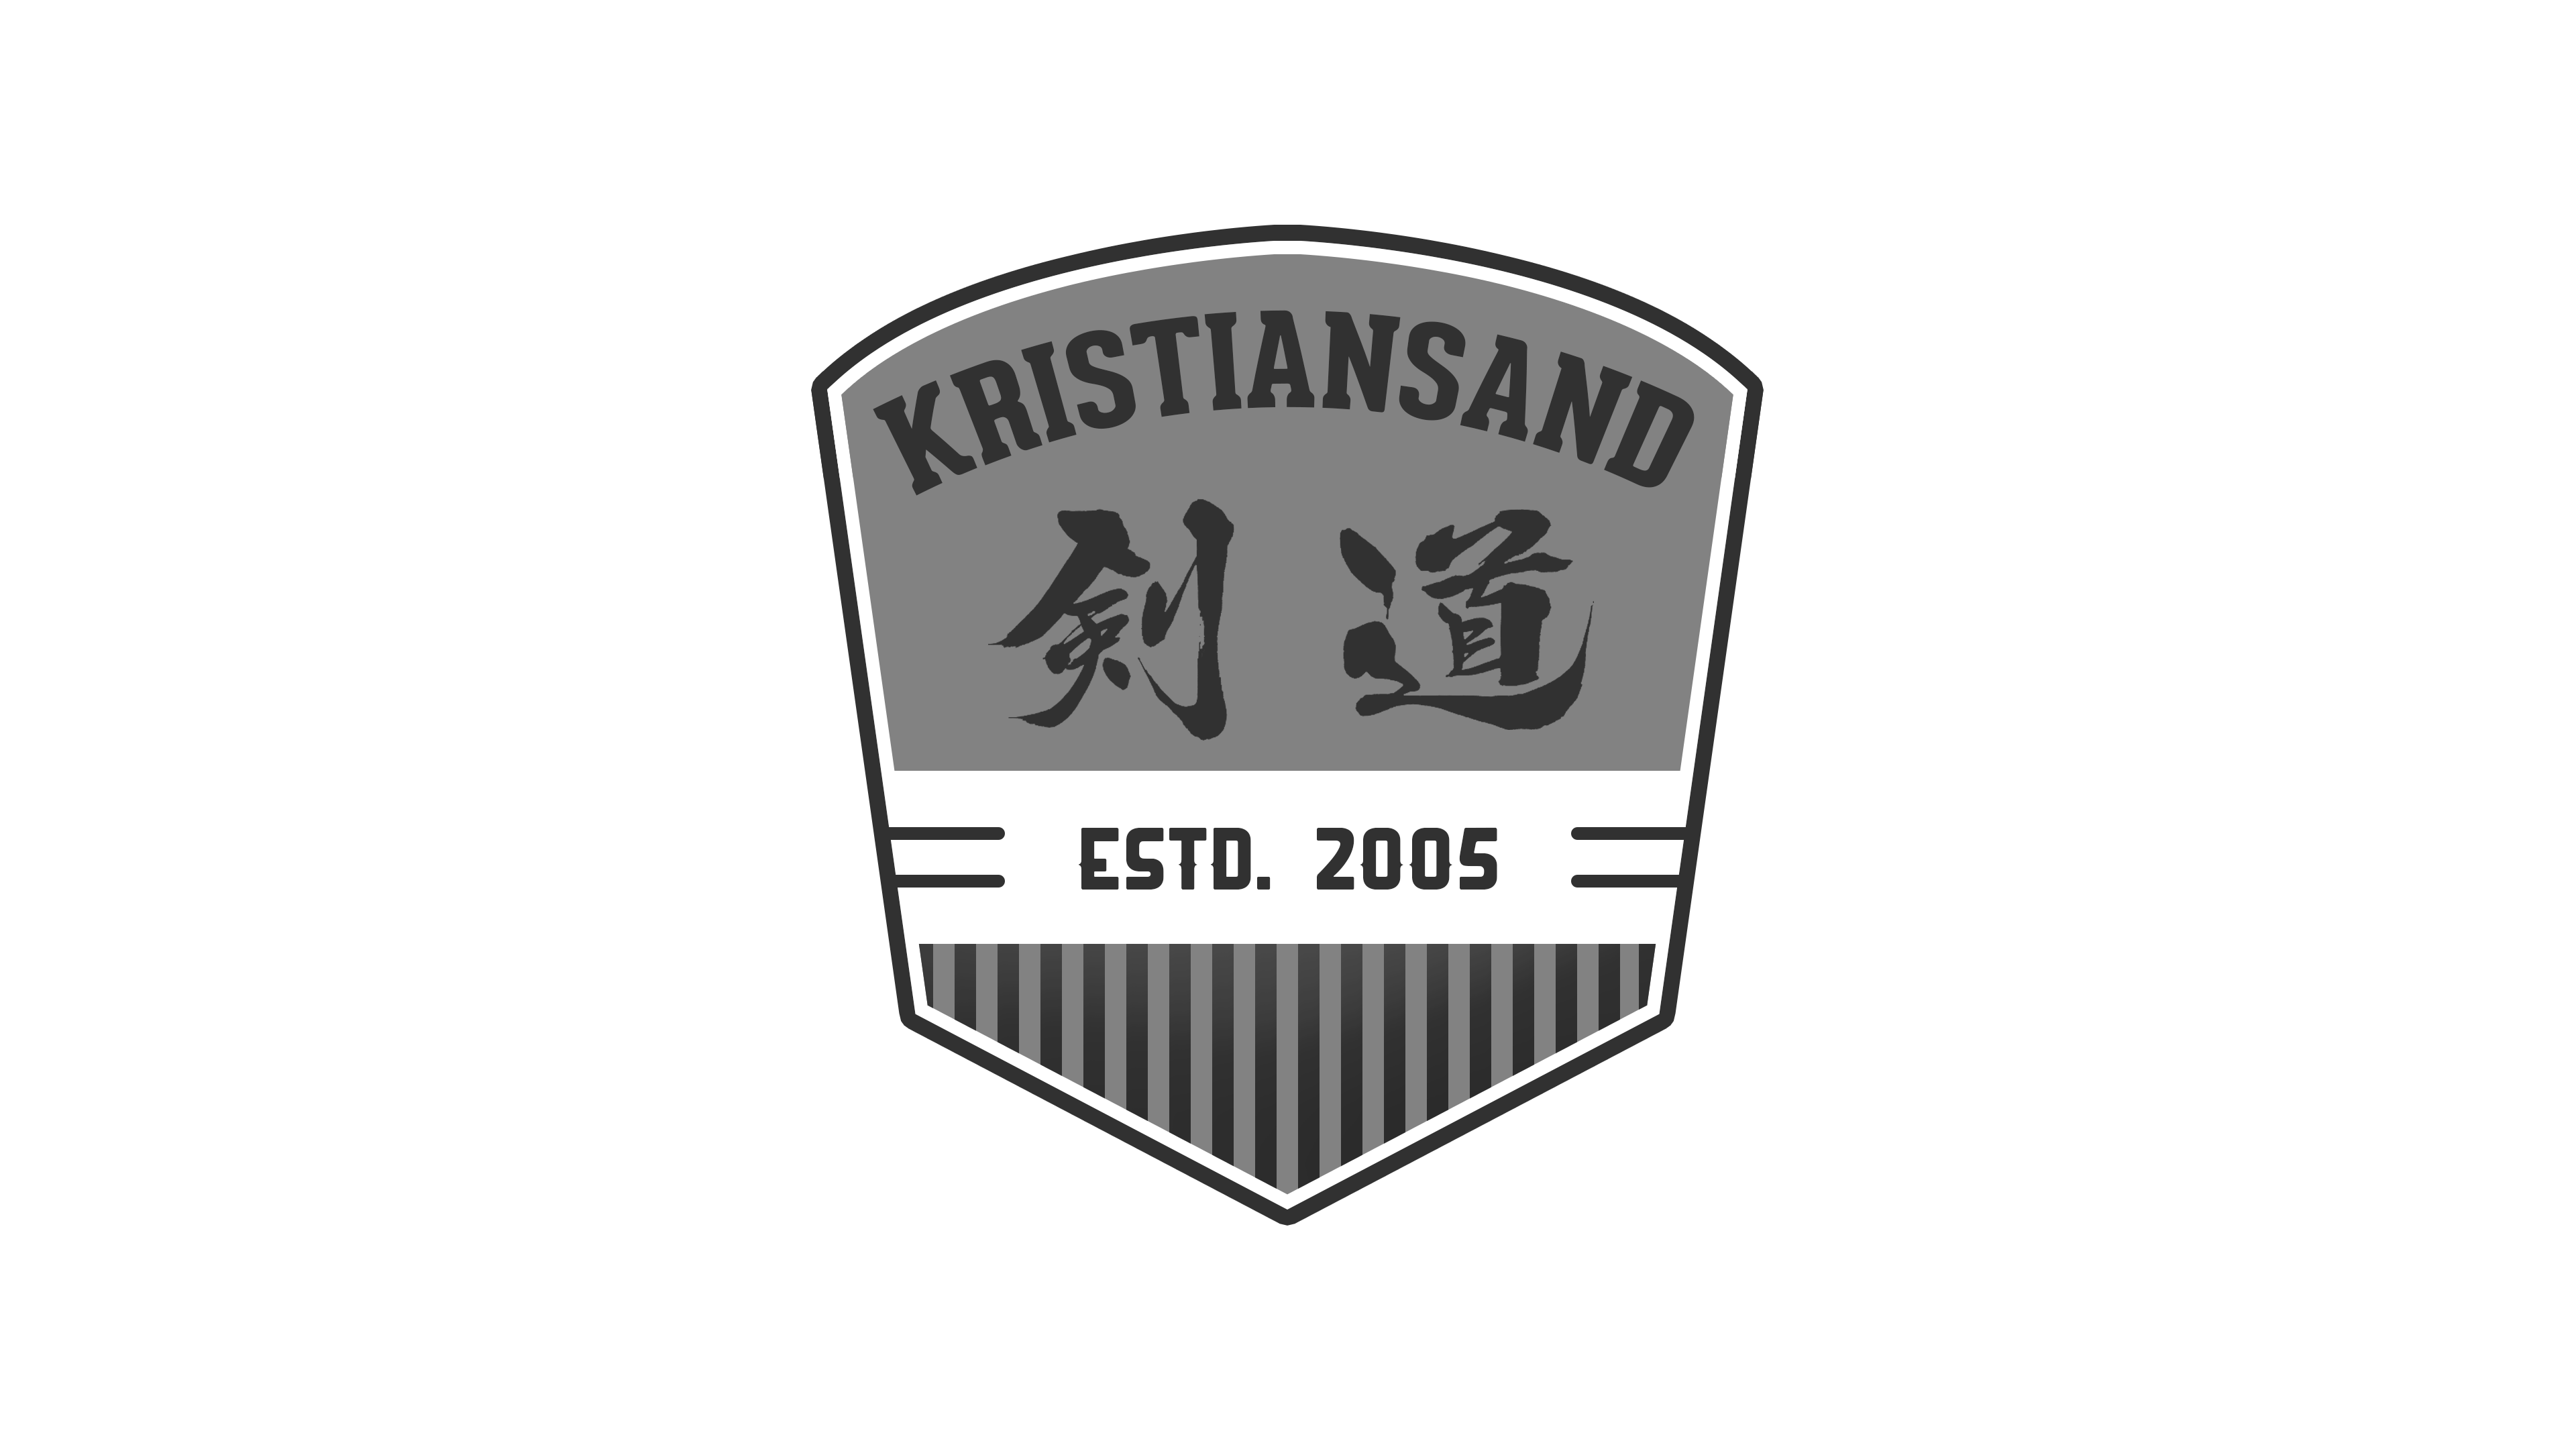 kristiansand_transparent